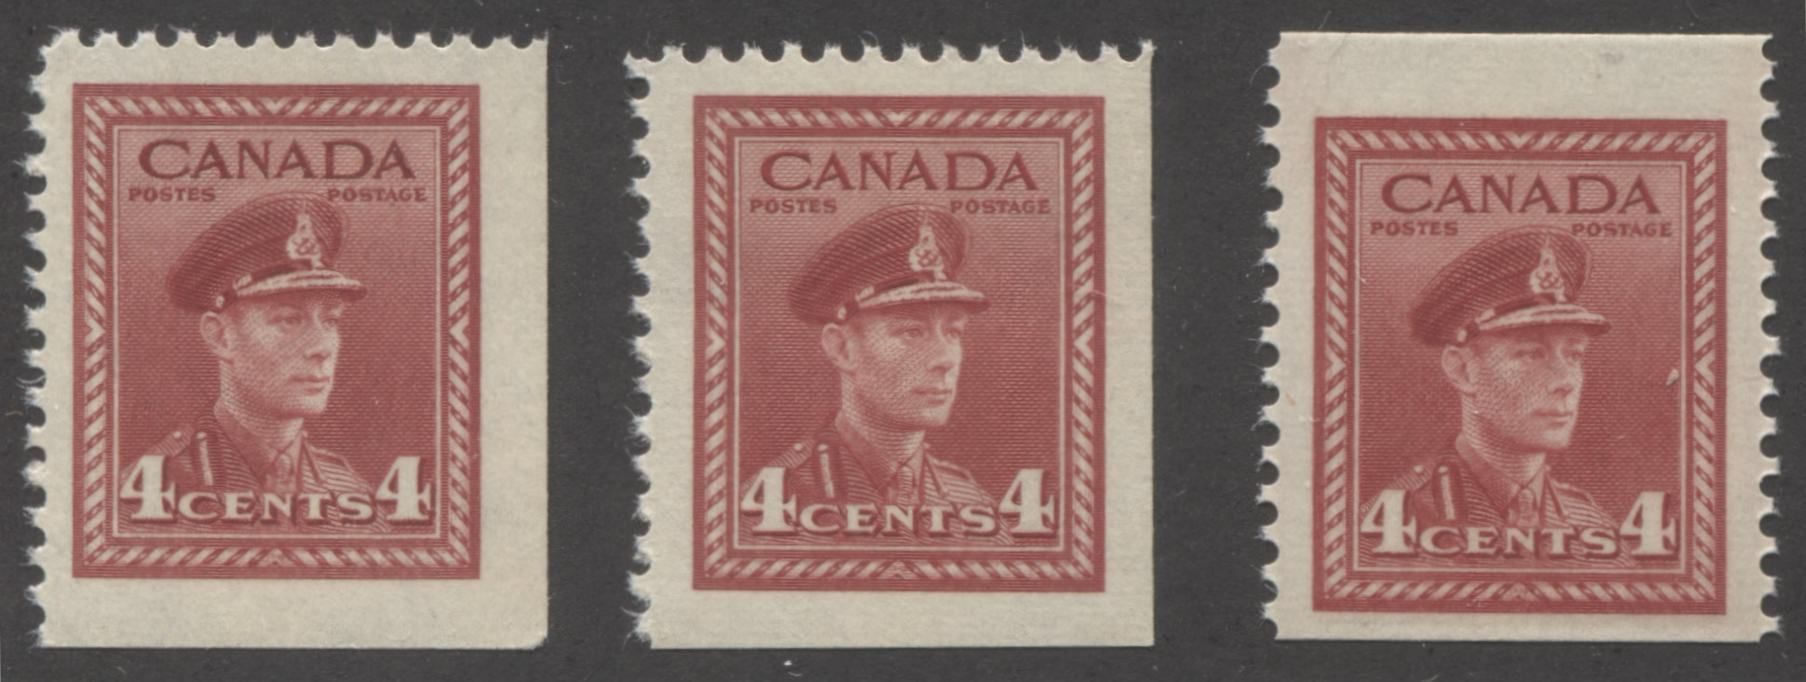 Canada #254as, 254bs 4c Carmine-Red King George VI, 1942-1949 War Issue, A Group of 3 Fine and Very Fine NH Booket Singles From Different Panes of 6, and 3, Printed on Different Papers Brixton Chrome